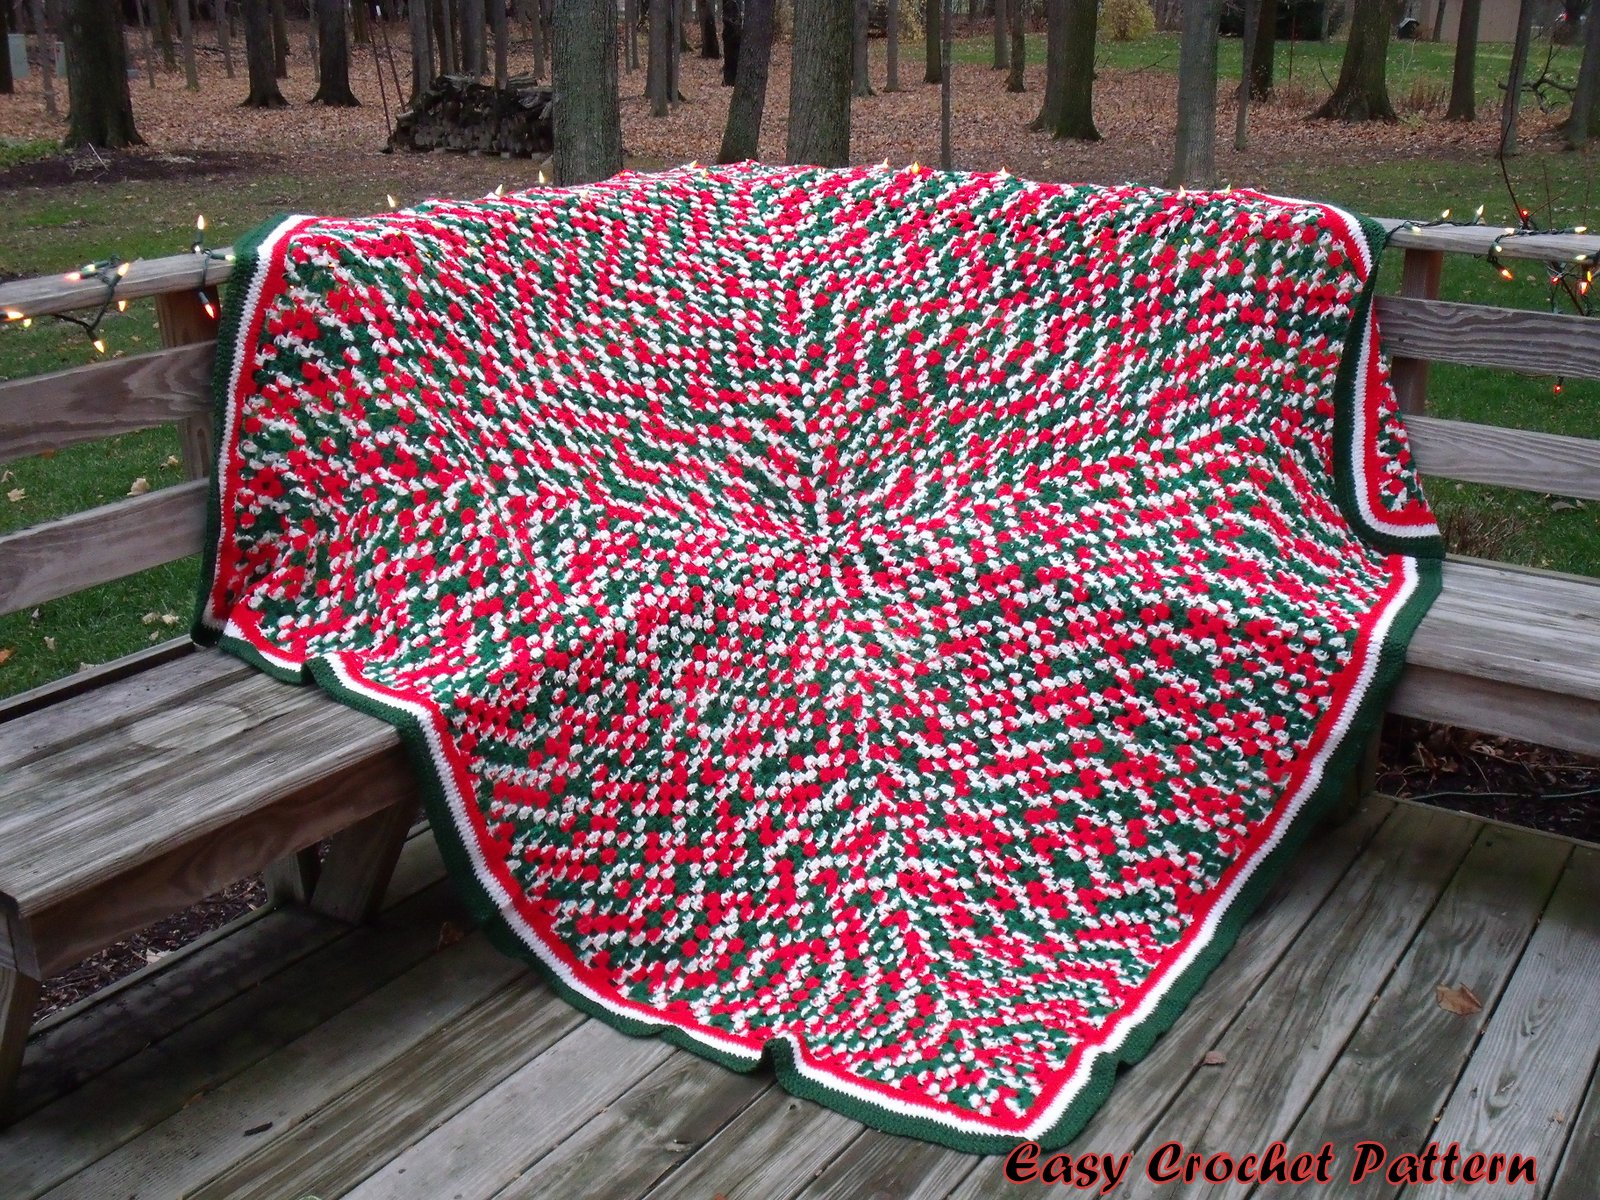 Crochet Afghan Patterns : Easy Crochet Pattern: Crocheted Christmas Afghans and Tree Skirt